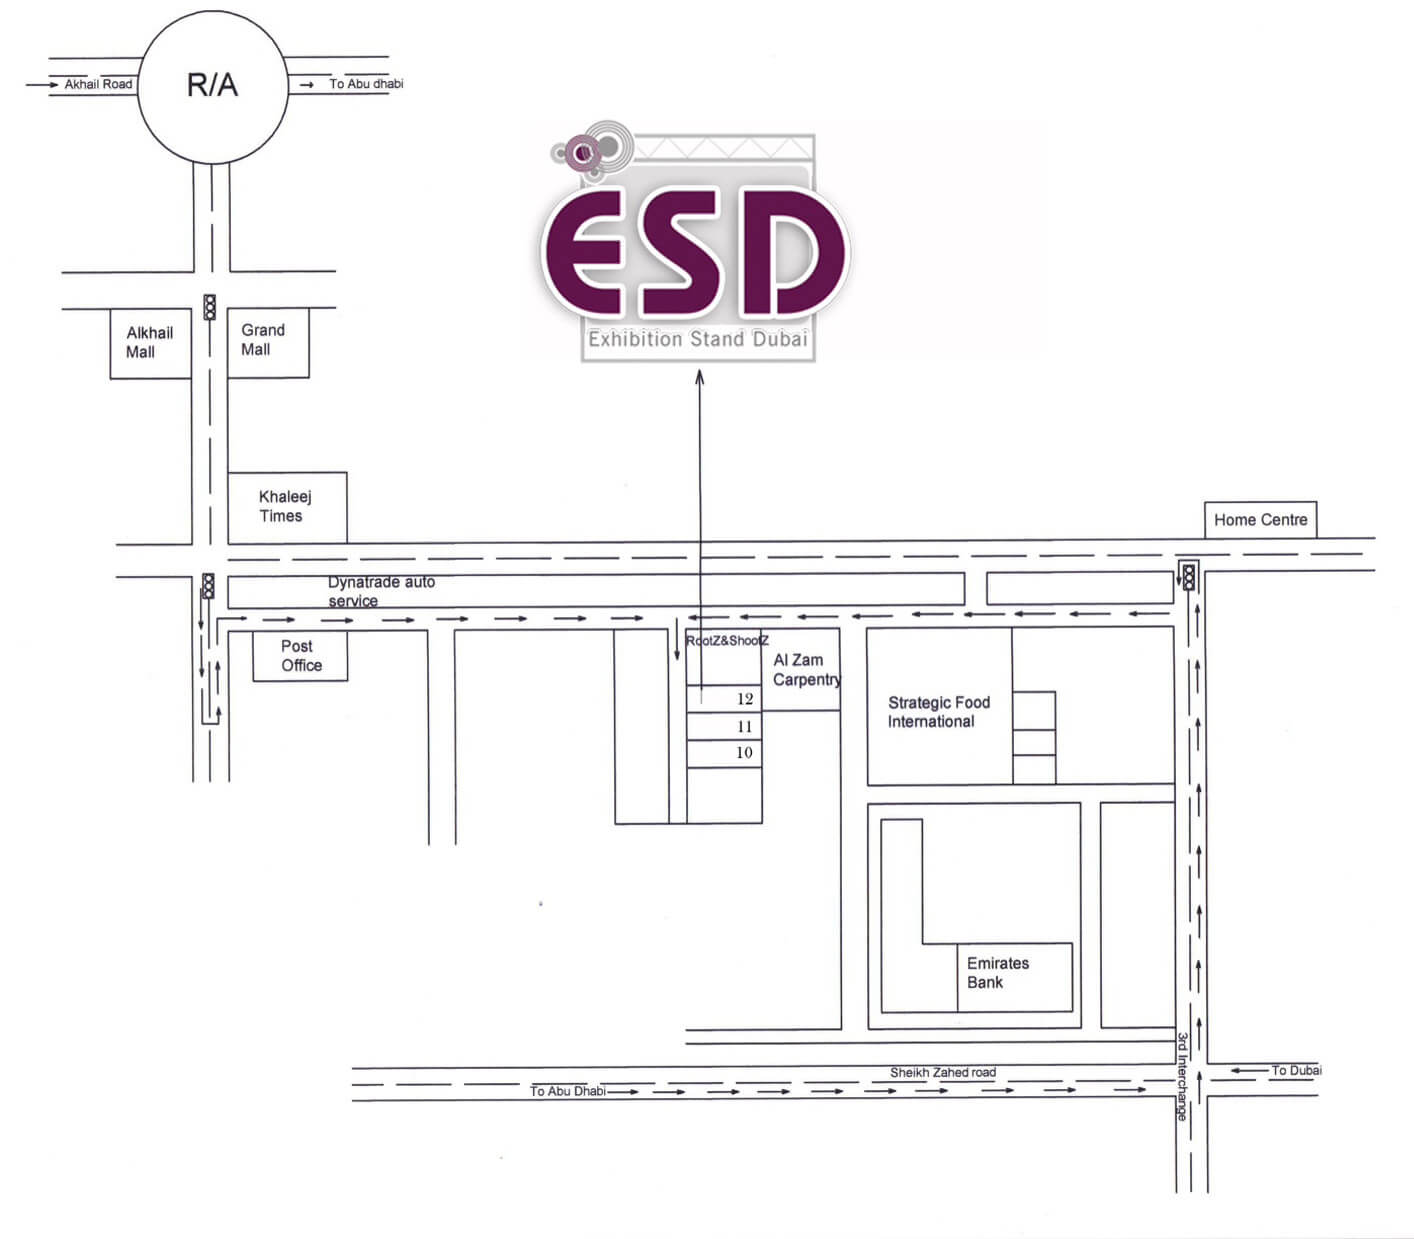 esd_map-1 - Exhibition Stand Dubai ¦ 800-STAND ¦ Approved